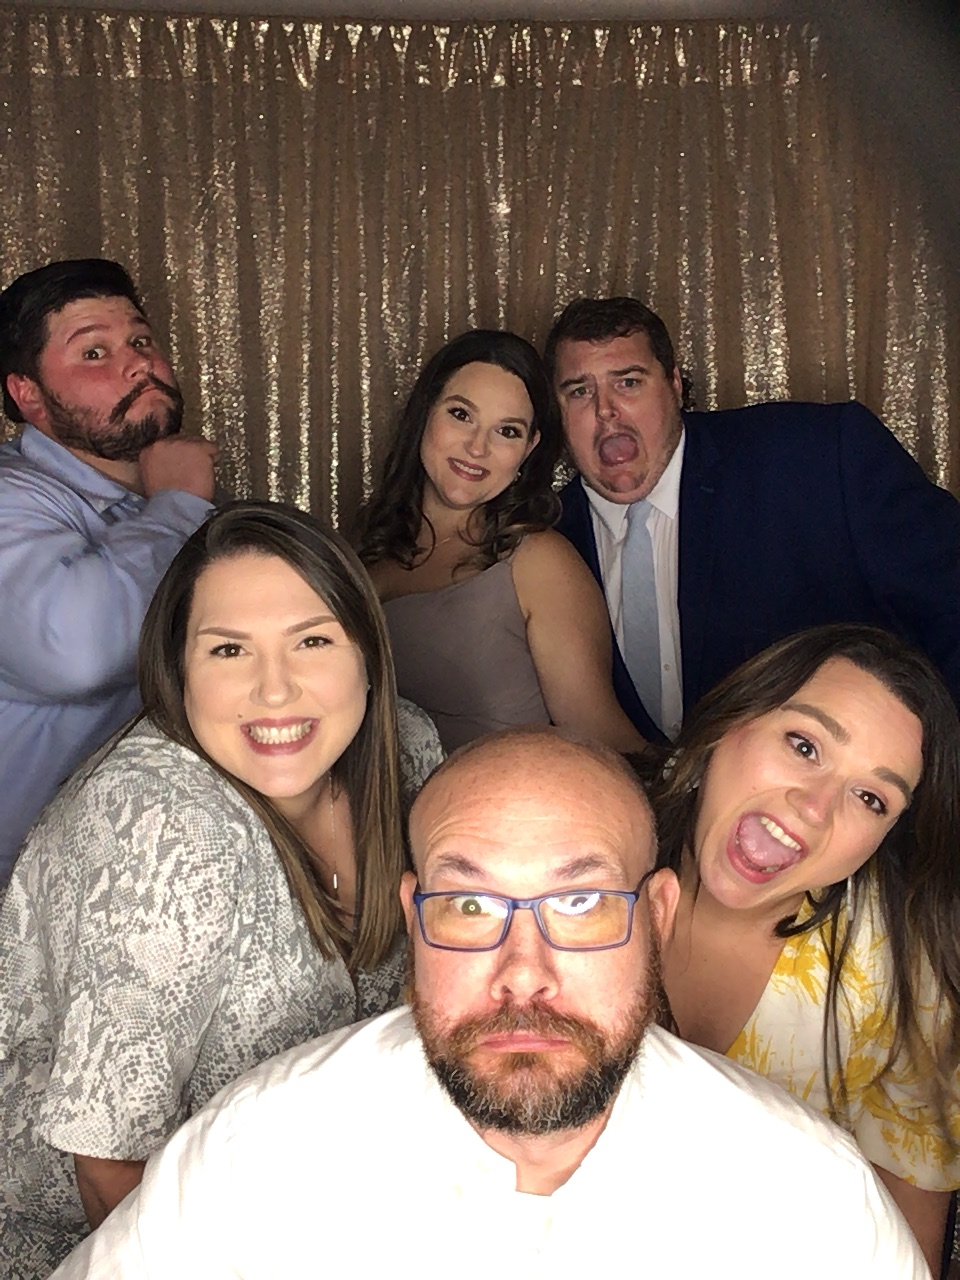 Photo Booth Pose - Silly Faces